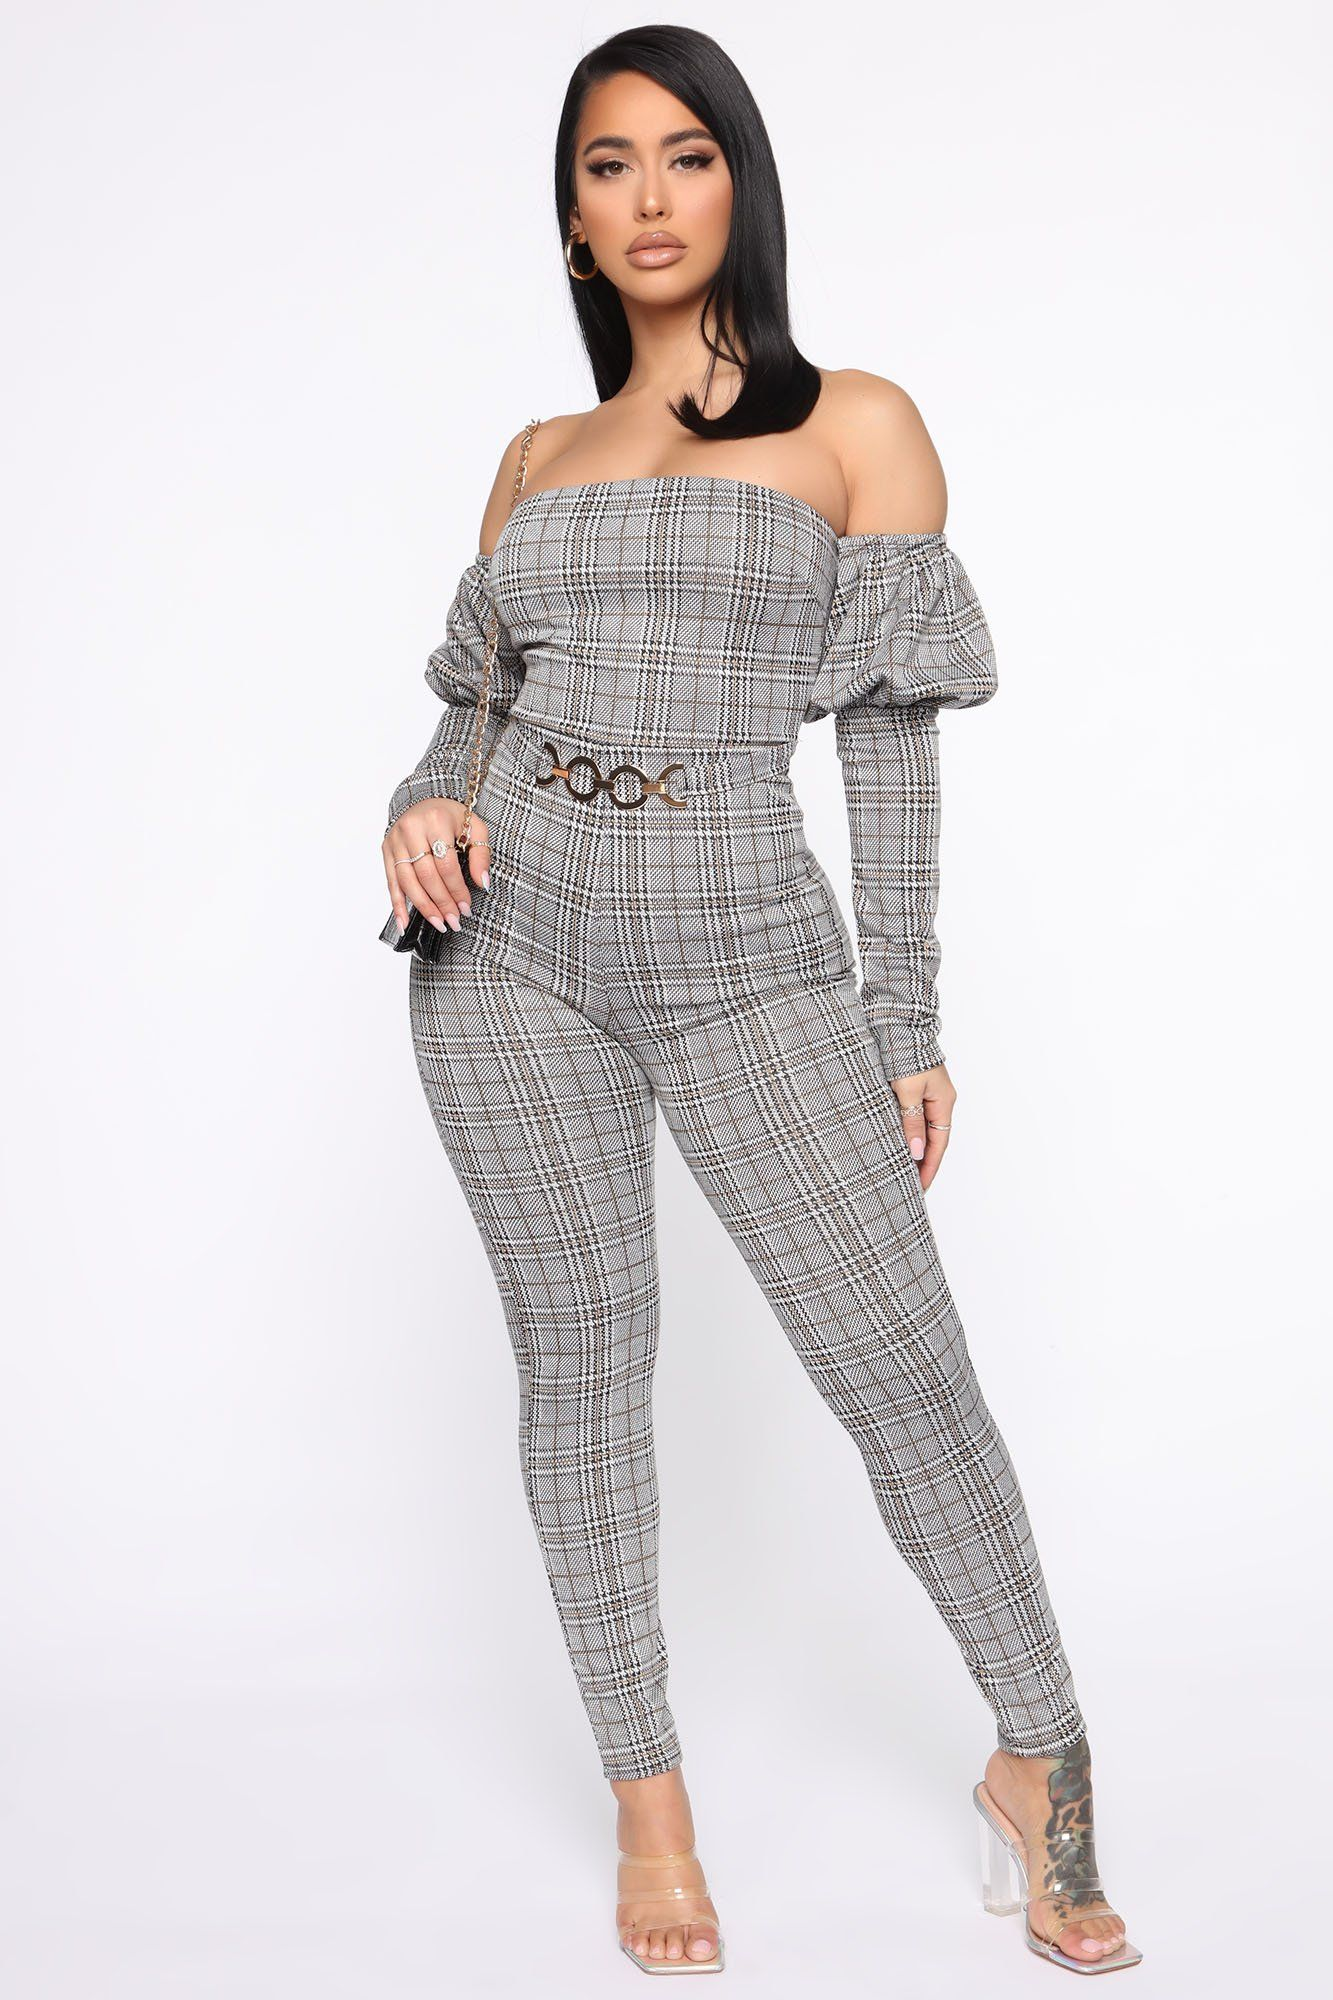 Never Been Plaid Jumpsuit Black/White in 2021 Plaid